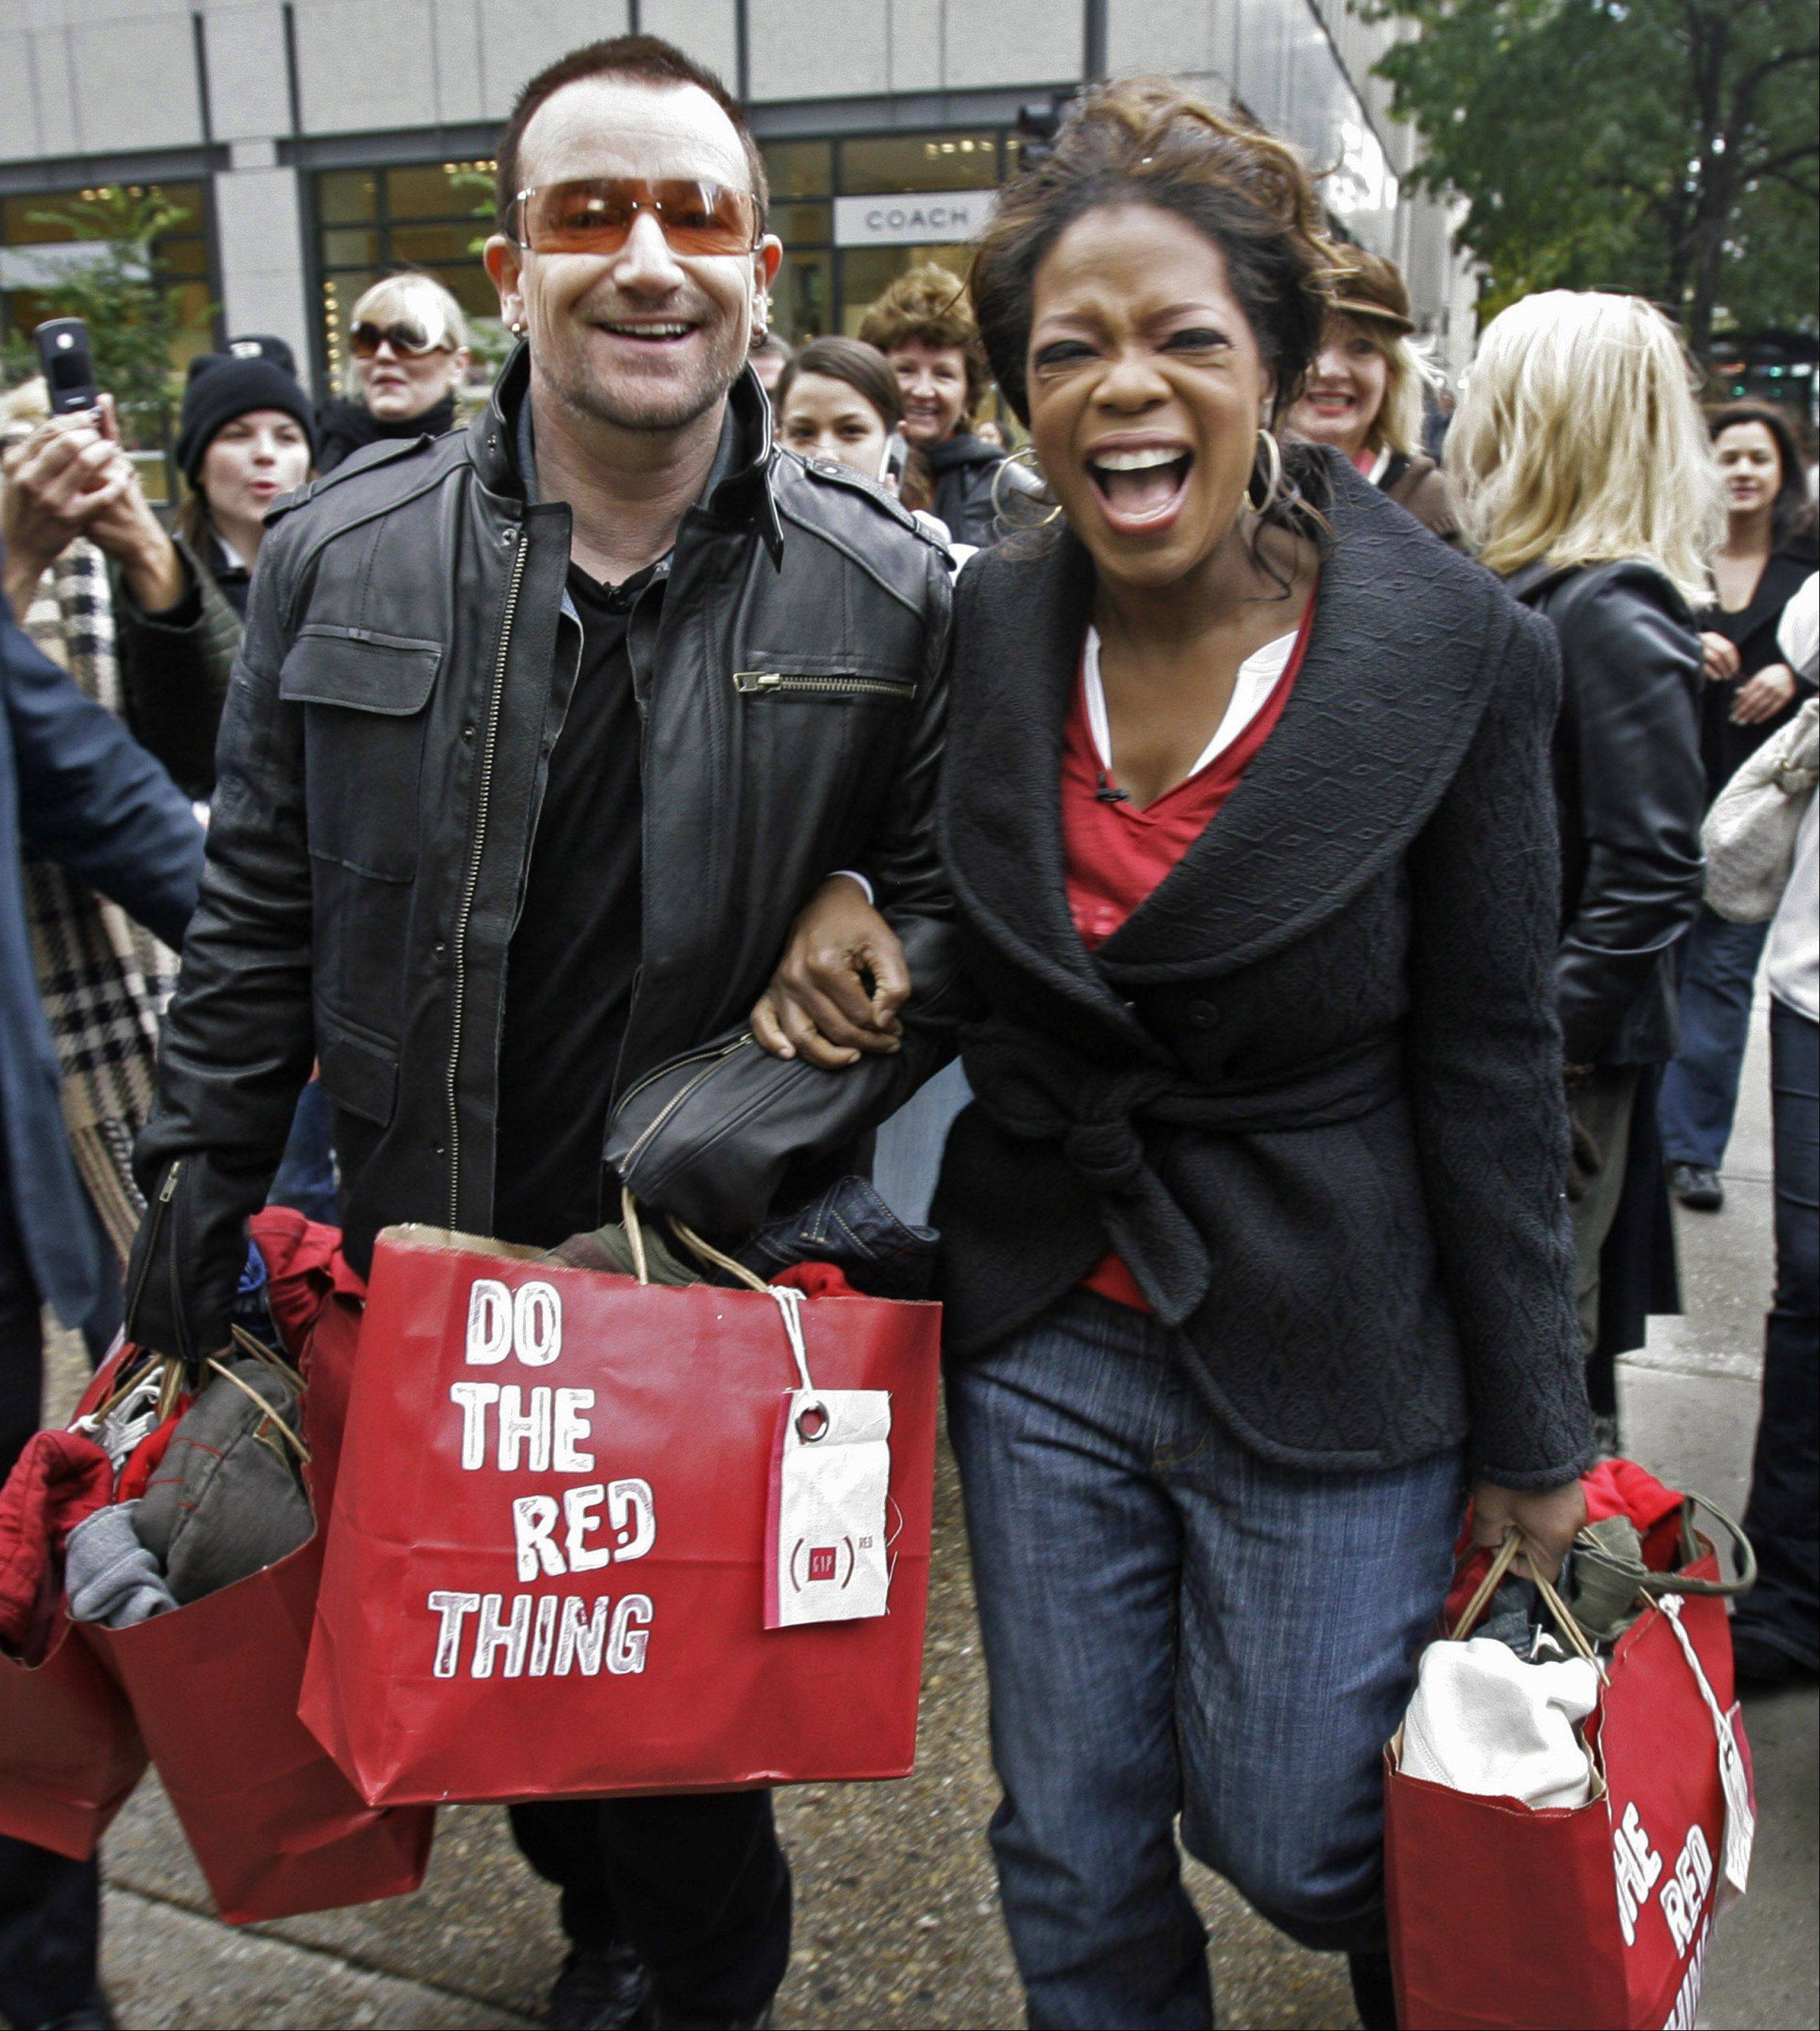 "Irish rocker Bono, frontman for U2, and talk show host Oprah Winfrey walk down Chicago's ""Magnificent Mile"" Thursday, Oct. 12, 2006, for a shopping spree to promote his new Red product line that will be put on sale in the coming weeks by retailers Gap, Apple, Motorola, Converse and Emporio Armani. Gap will donate 50 percent of sales to Bono's Project Red to fight AIDS in Africa."